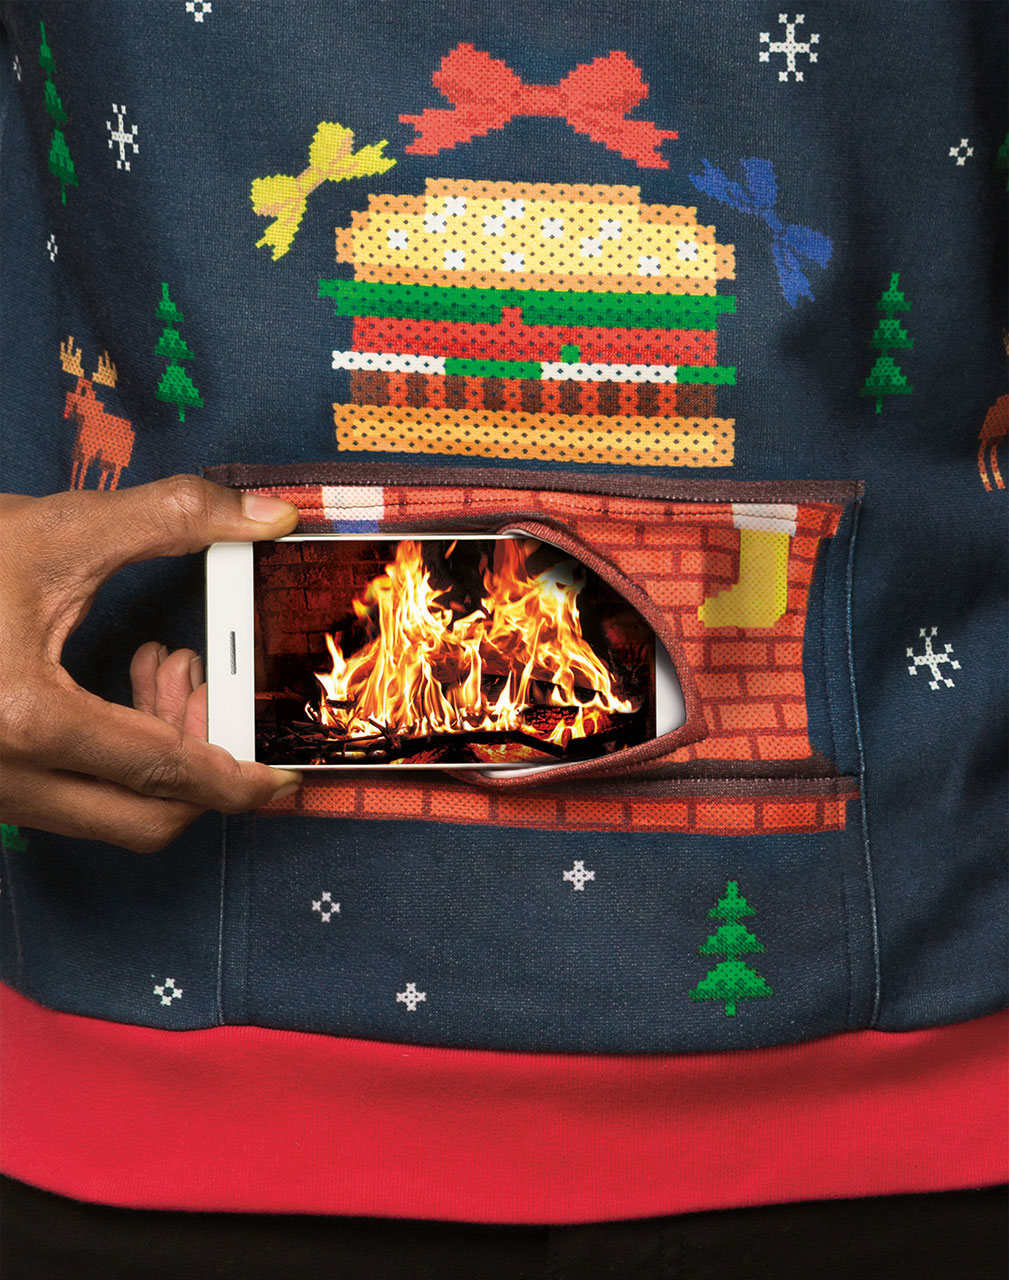 Burger King\'s Ridiculous Christmas Sweater Puts a Burning Yule Log ...